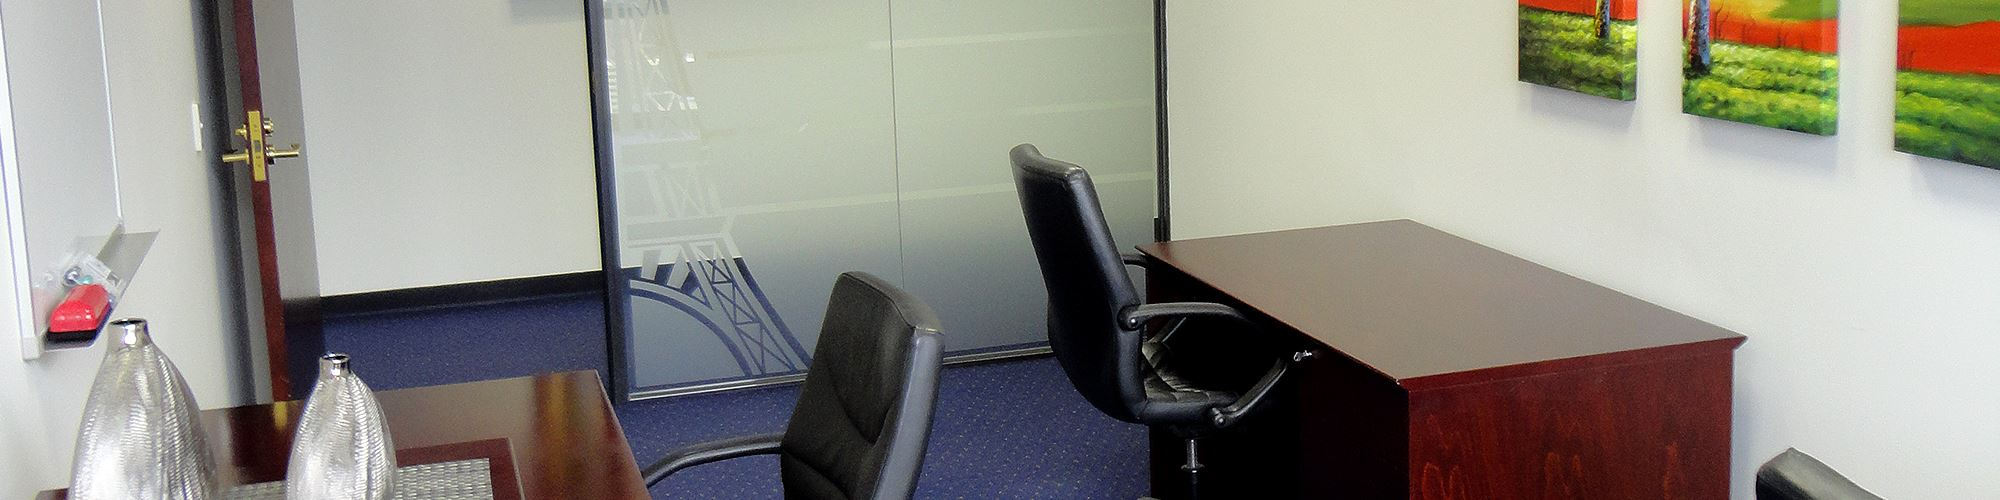 banner-140-william-street-melbourne-office-internal-1.jpg